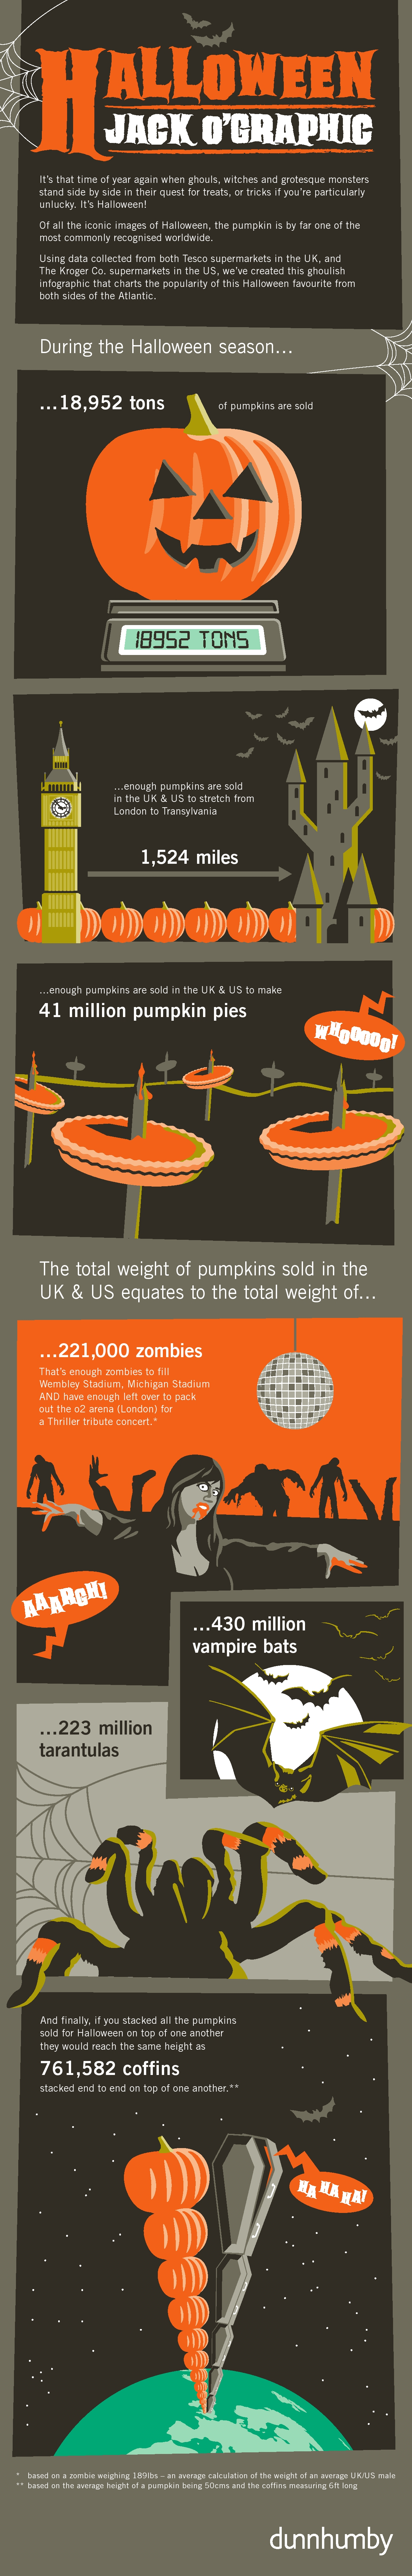 Halloween infographic over pompoenen en statistieken over halloween.